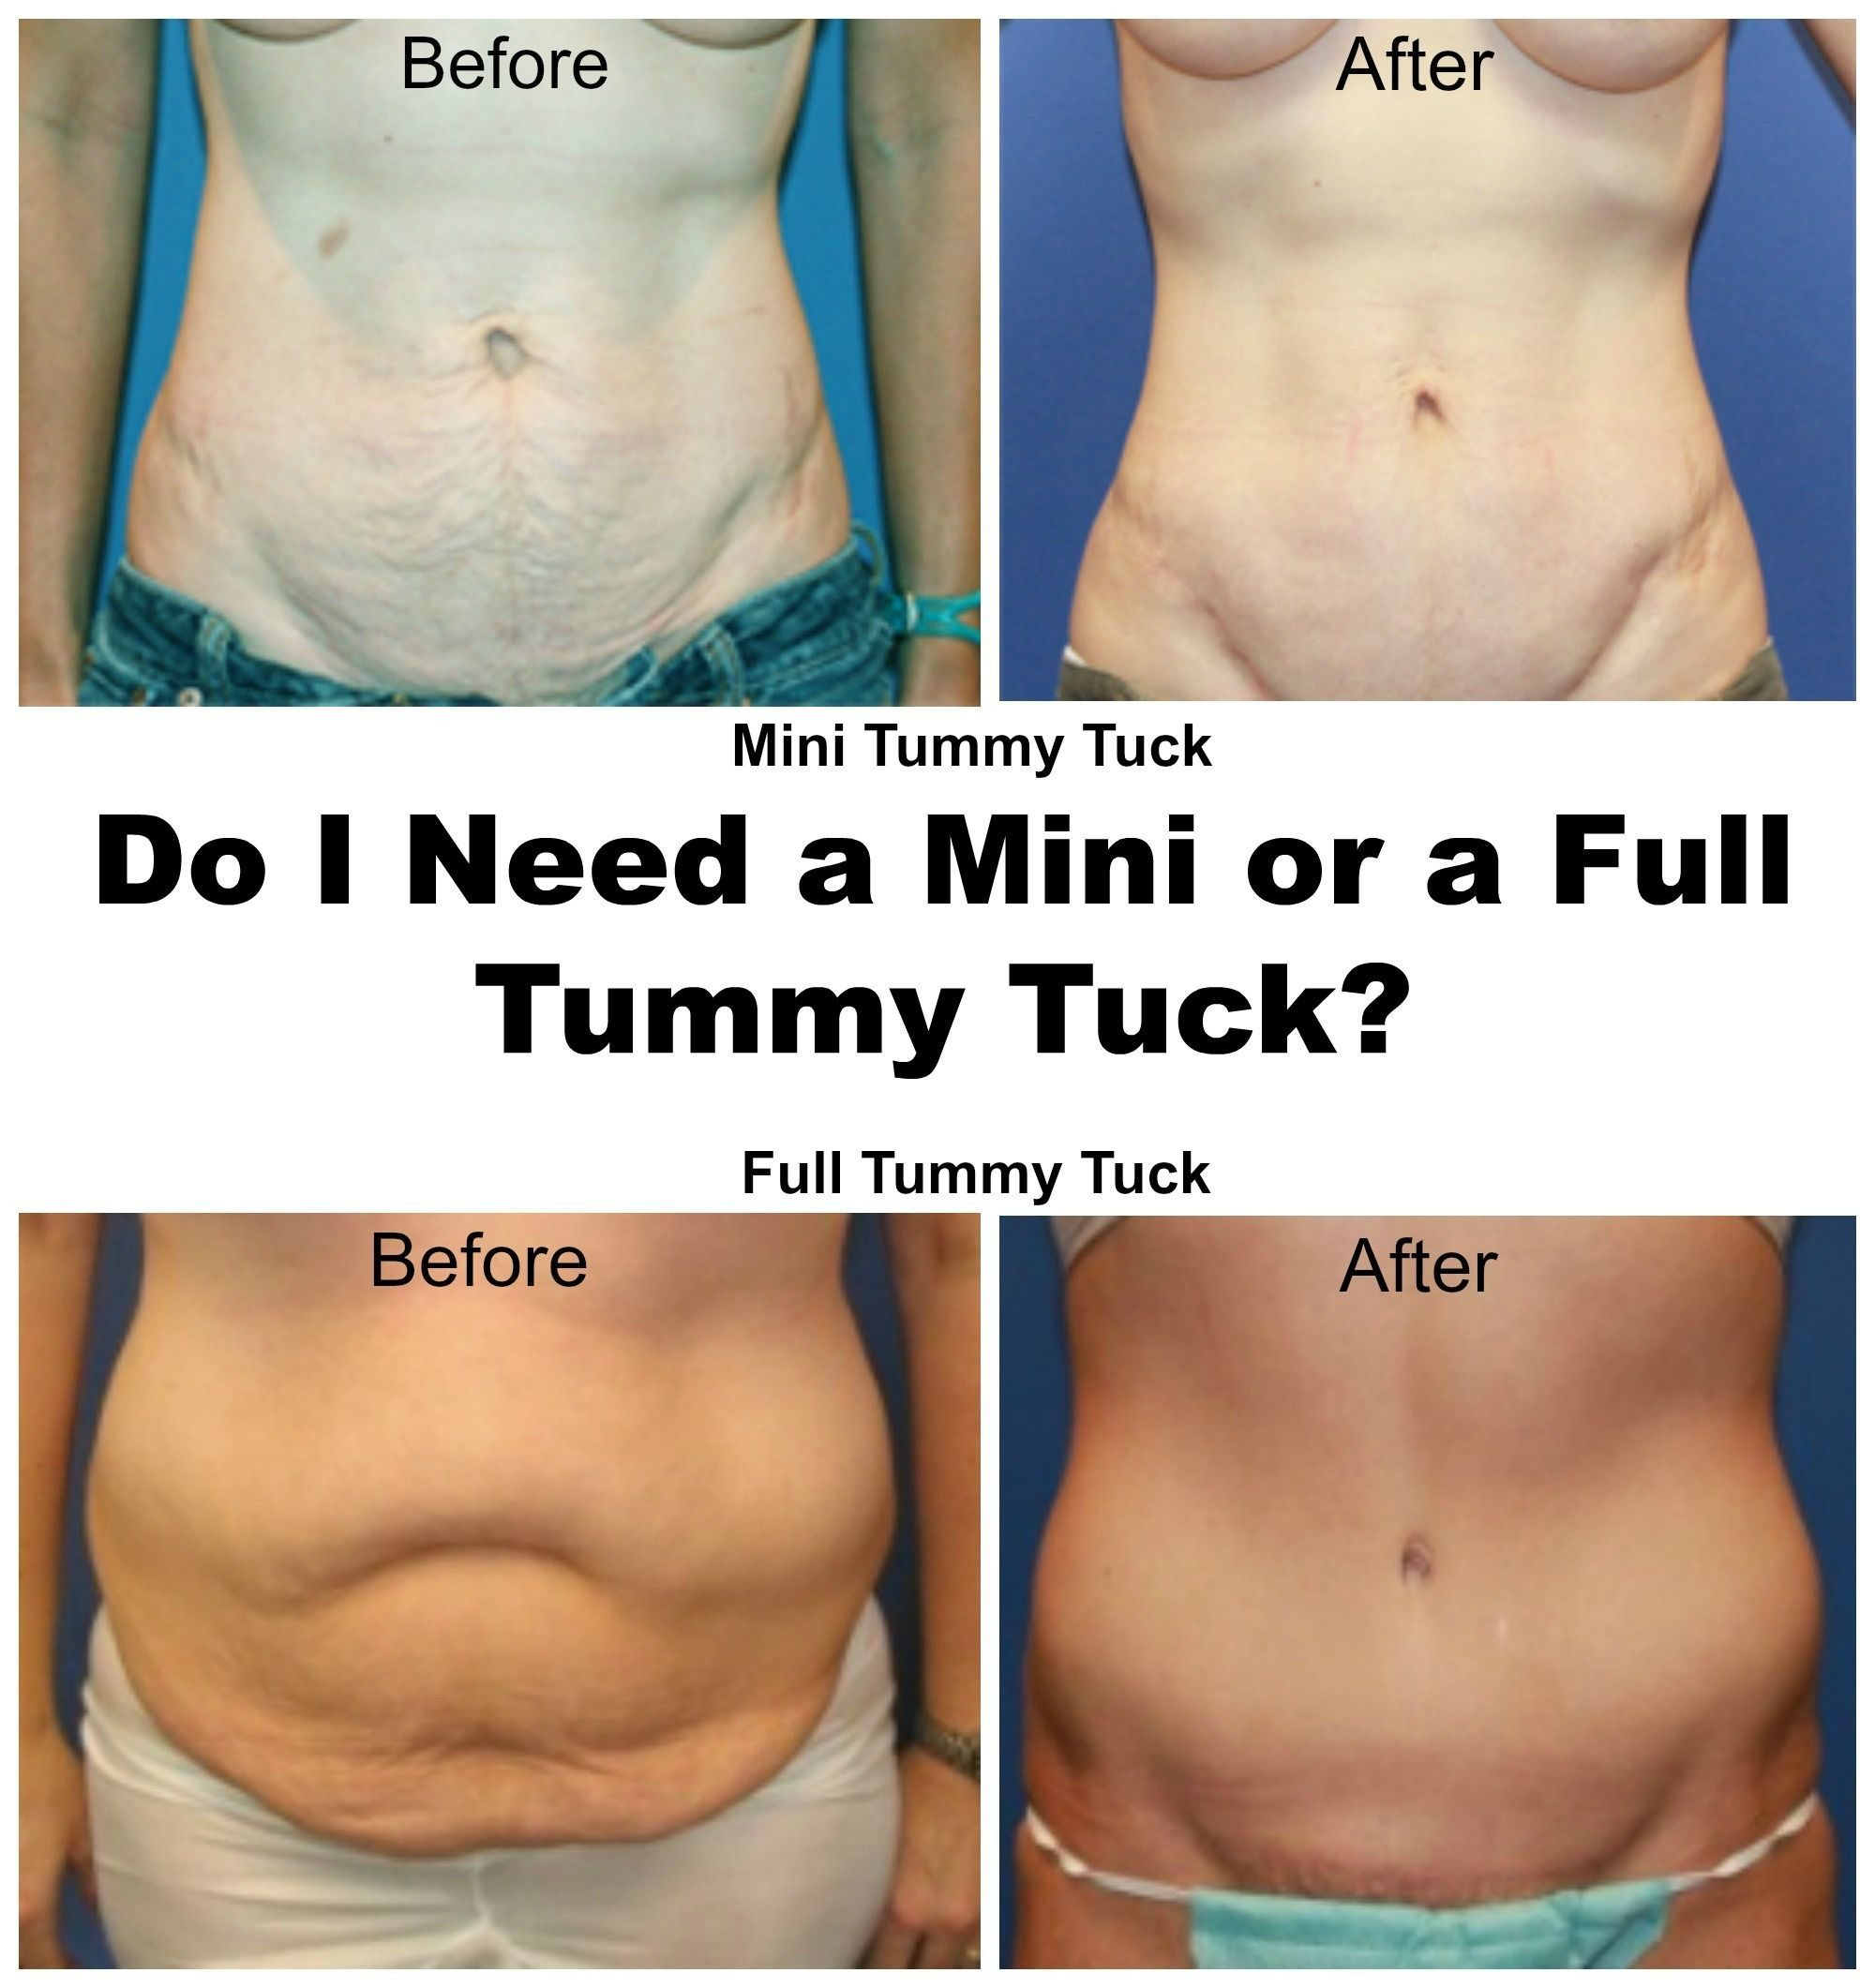 Tummy Tuck Cost in Bangalore - Compare Prices, Reviews, Best